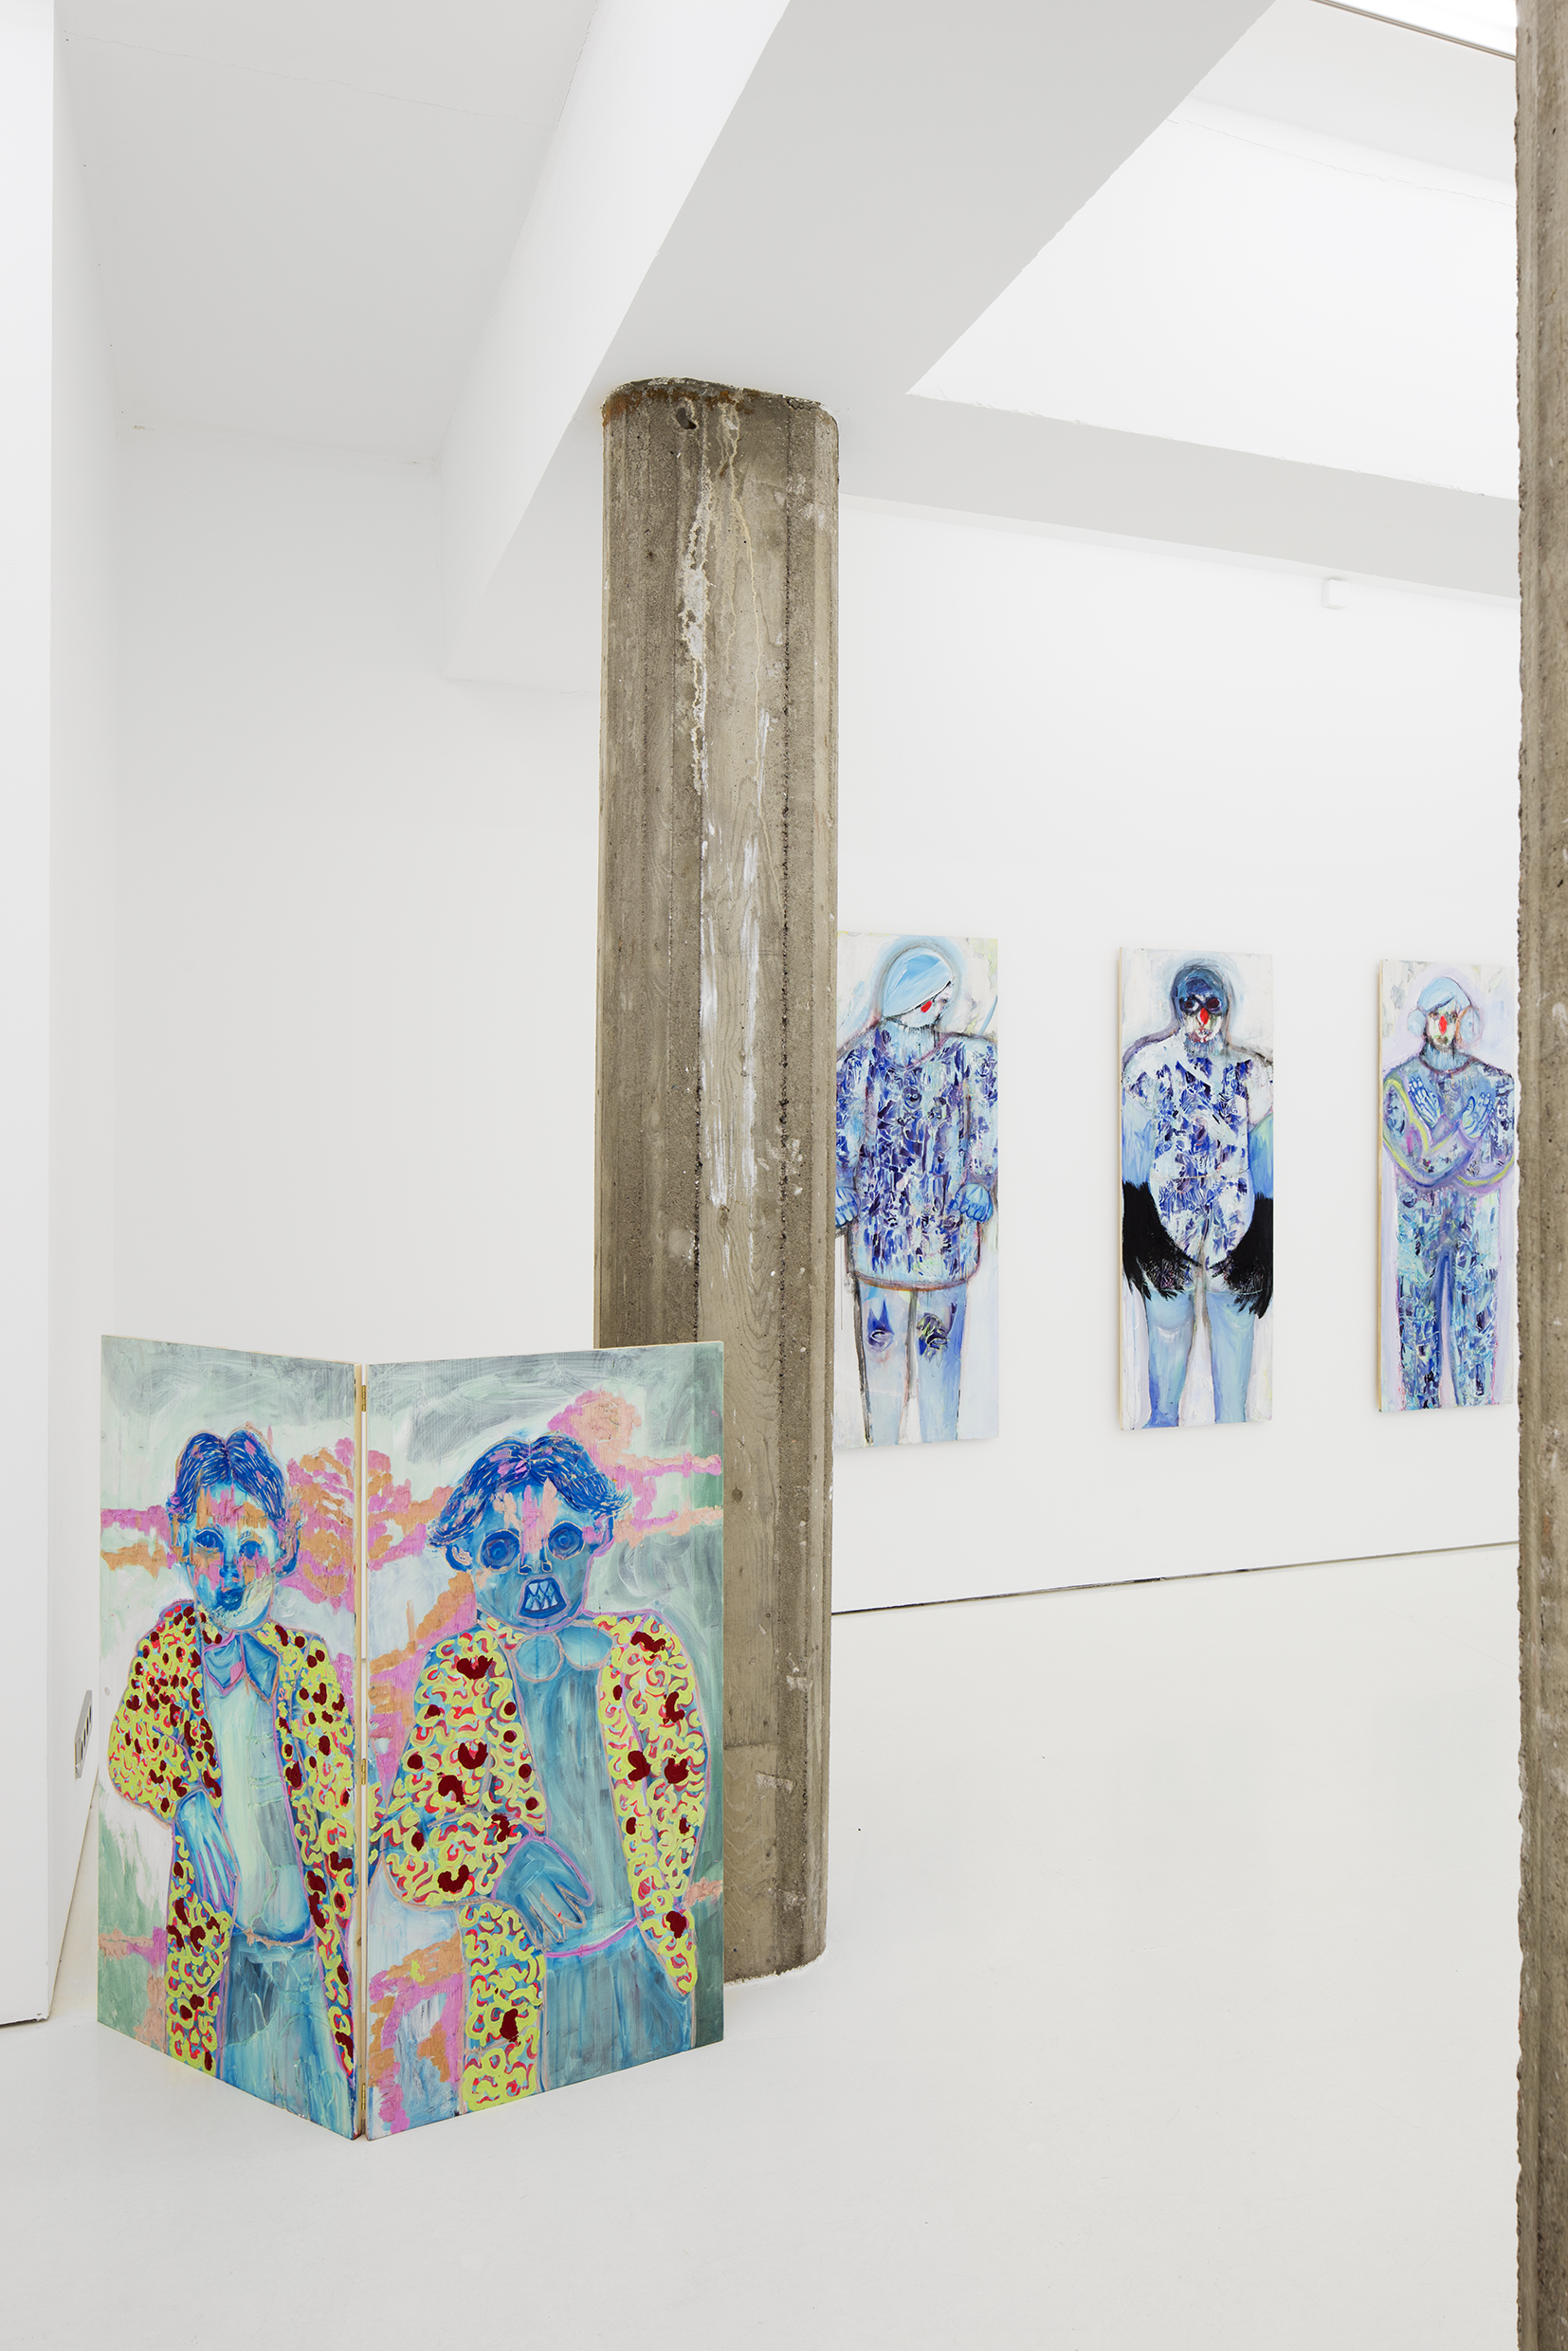 View to the exhibition  Roses, Black Birds and Witches  on Helsinki Contemporary in 2019. Works:  Little blue , Painting and carving on wood, height 120 cm width 120 cm, 2018, and  Witch 2 , Painting and carving on wood, height 160 cm width 60 cm, 2018. Photo: Jussi Tiainen.